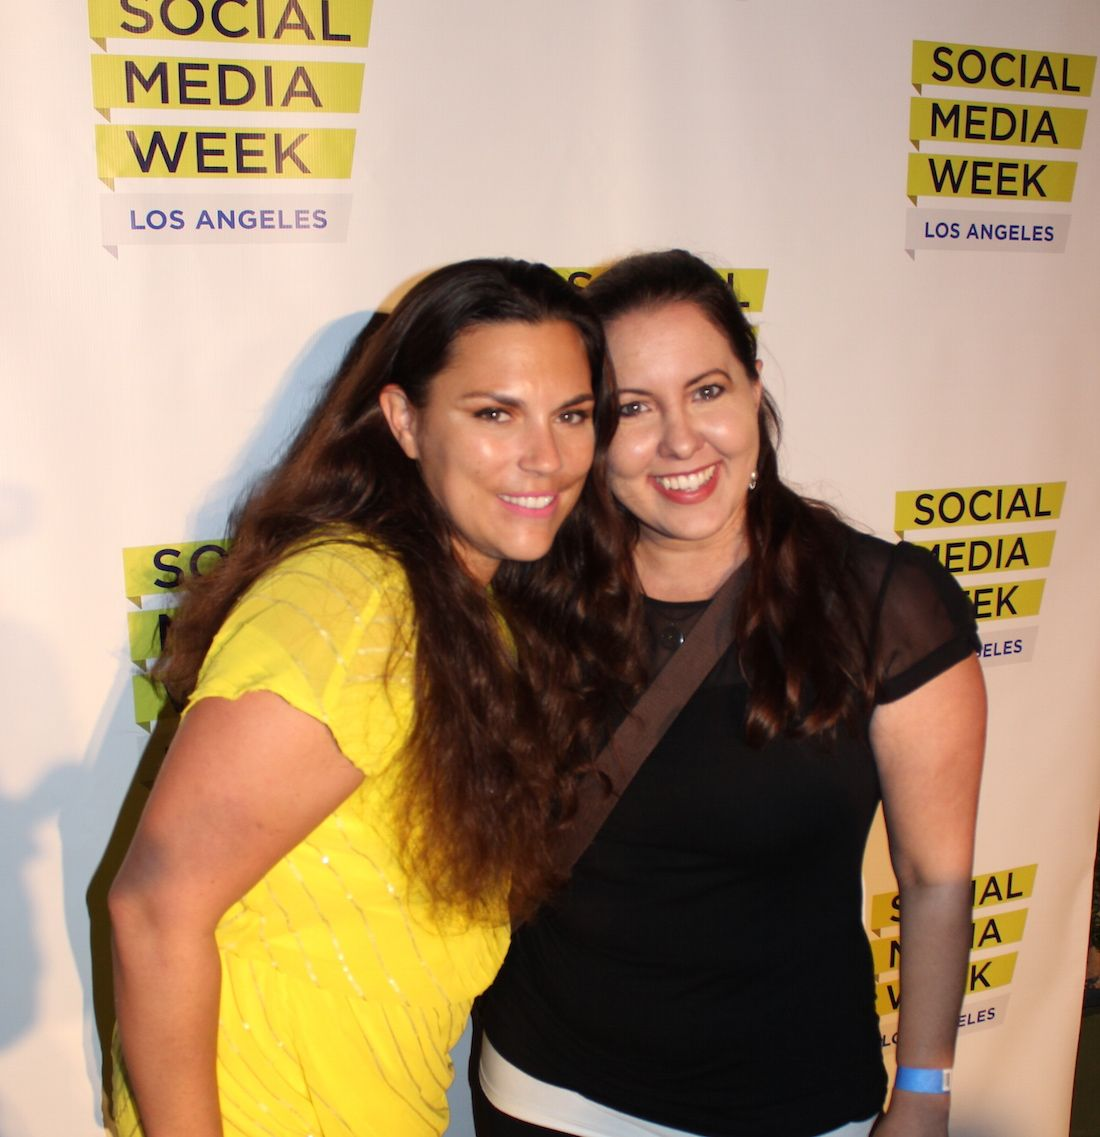 Jo Beyersdorfer of JNB Events and Joanna Pantages of Scenester.tv